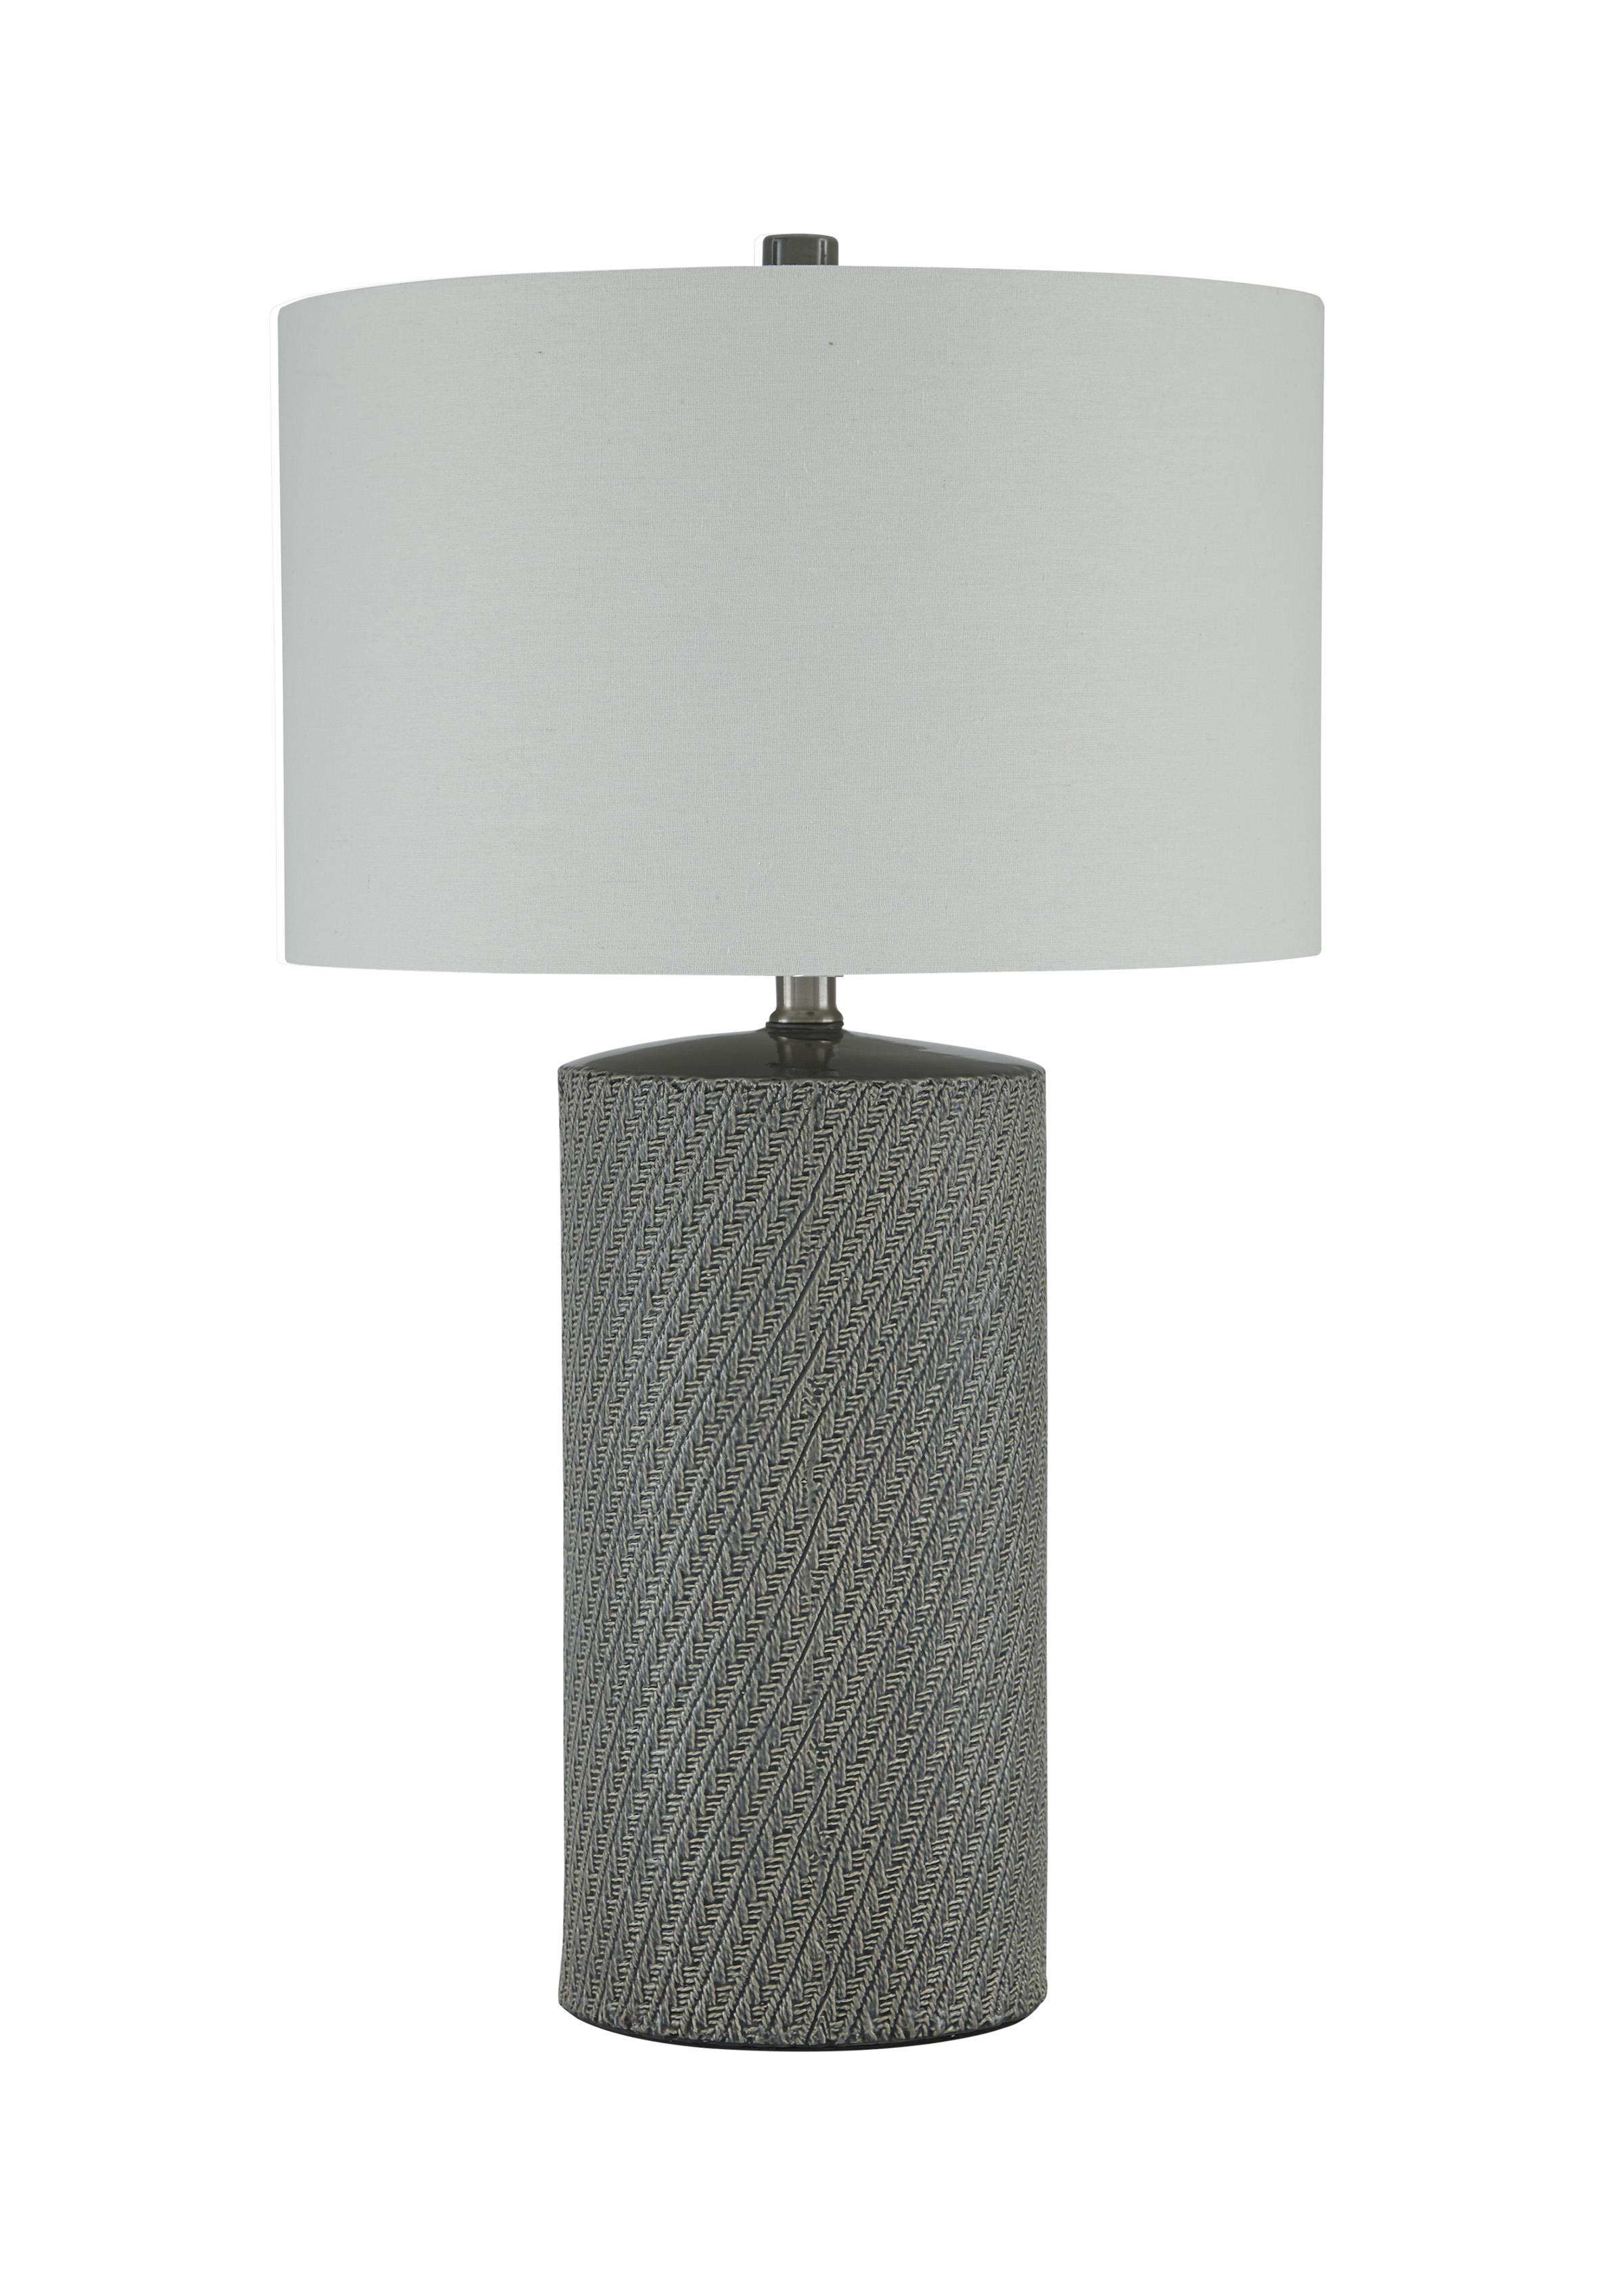 Signature Design by Ashley Lamps - Vintage Style Shelleny Gray/Green Ceramic Table Lamp - Item Number: L100344